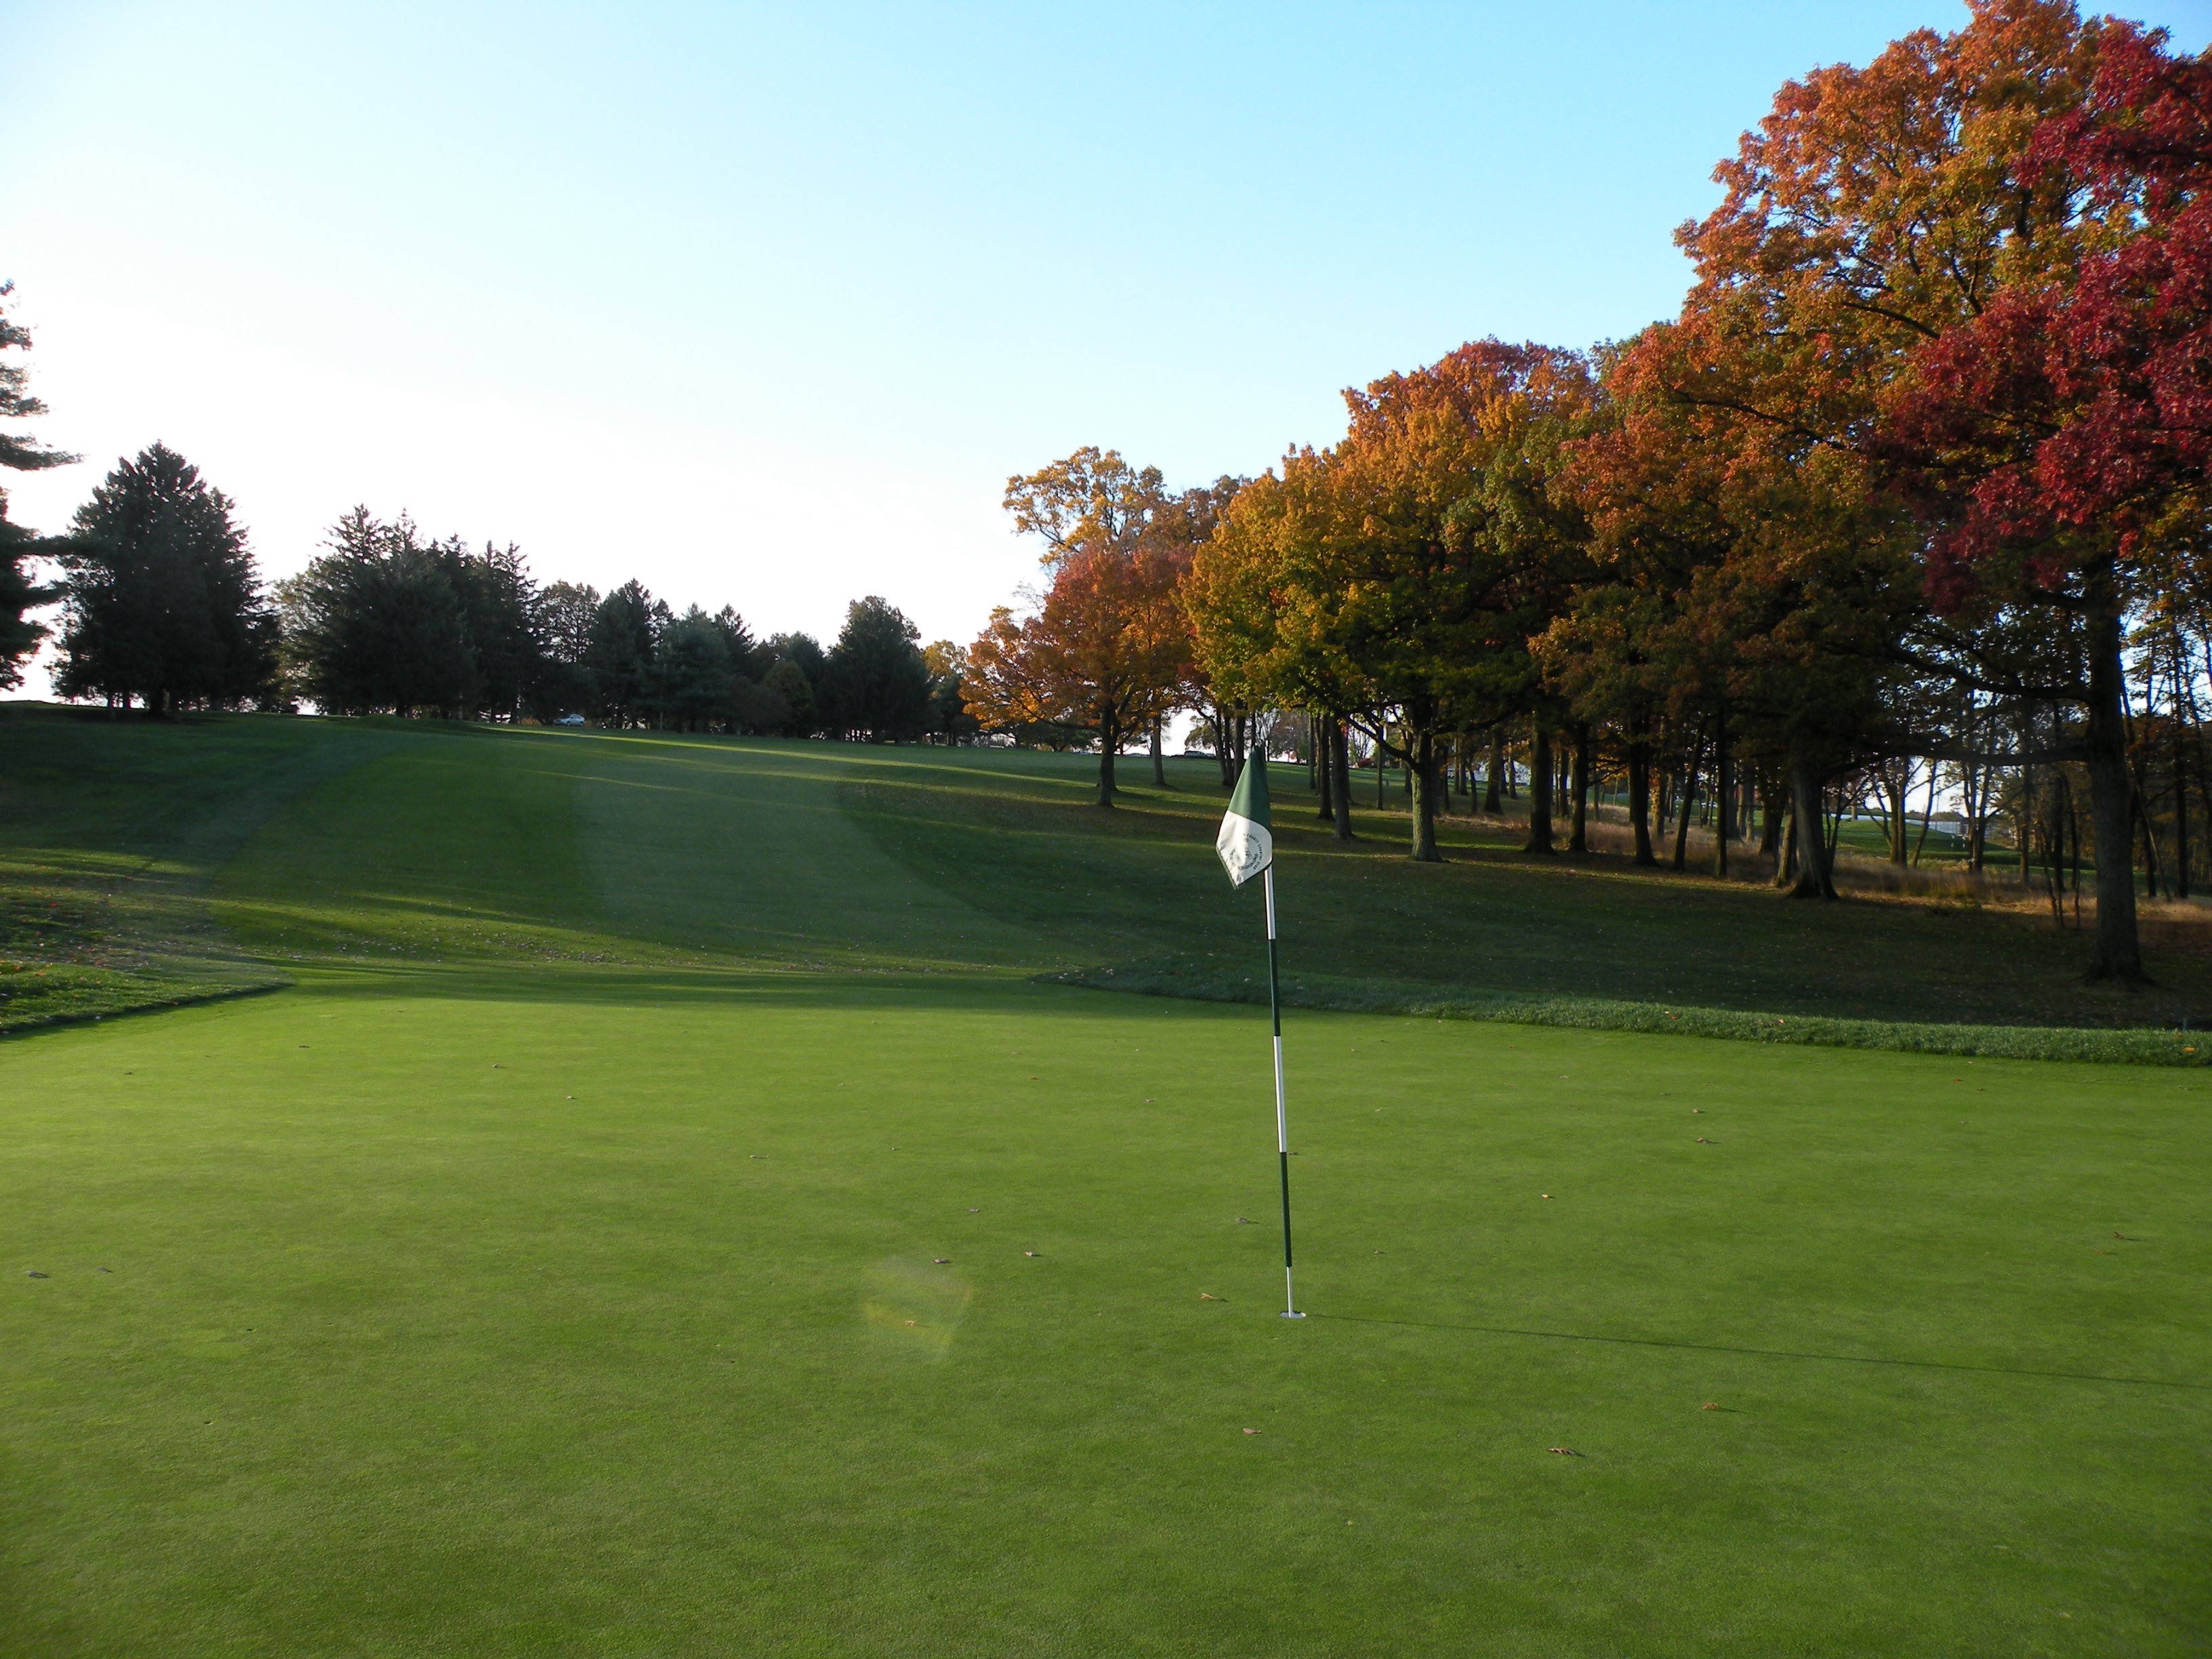 country club Newark  Newark, Ohio – City Guide  country club newark1